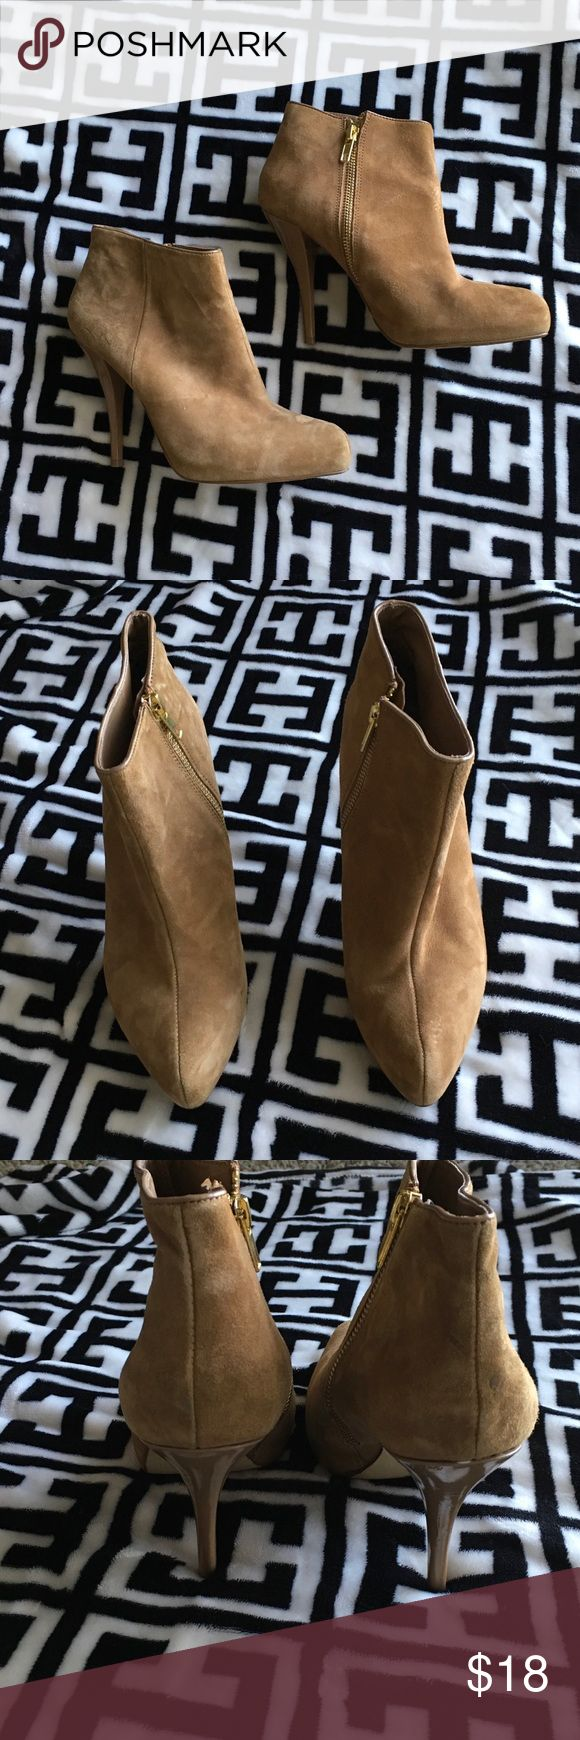 Chinese Laundry tan ankle boots Chinese Laundry ankle boots- 4 1/2 inch heel- in good used condition, marks on heels shown in last pic Chinese Laundry Shoes